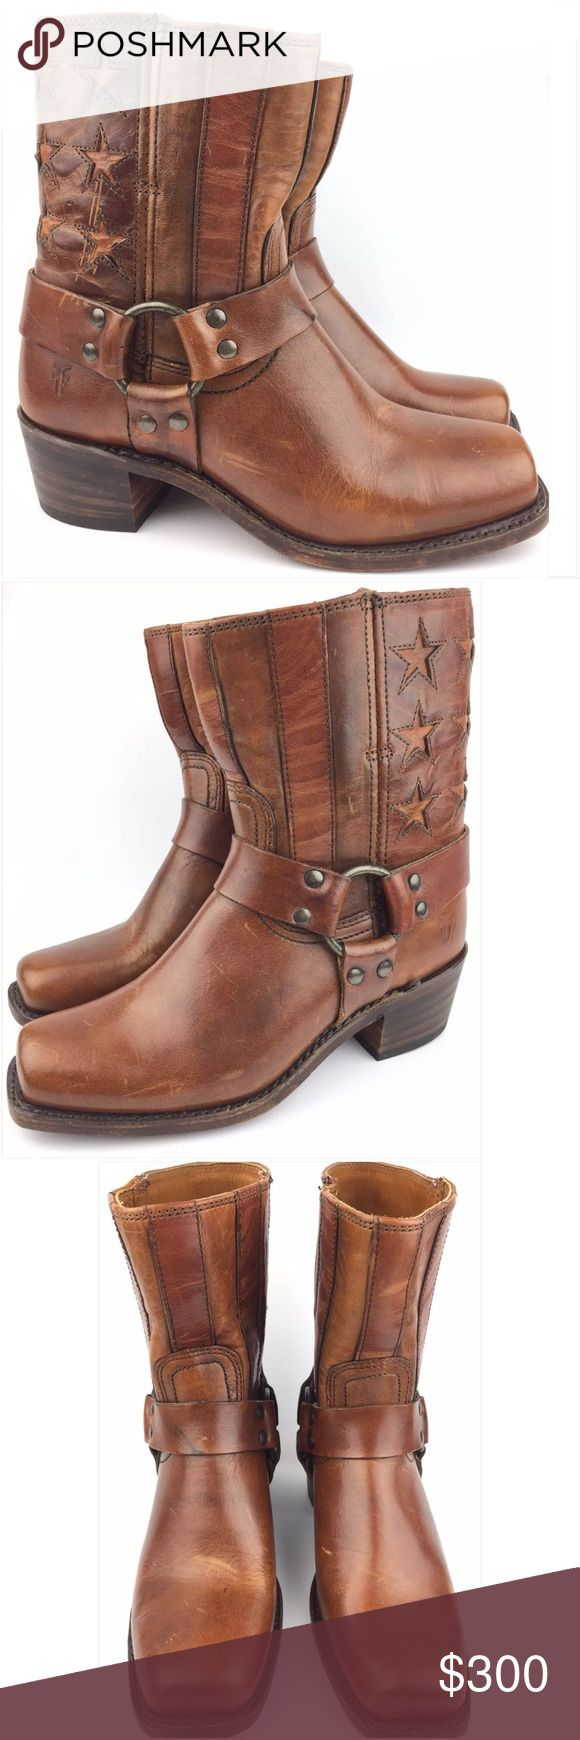 """Frye Harness Americana Tan Short Ankle Boots New with defects 